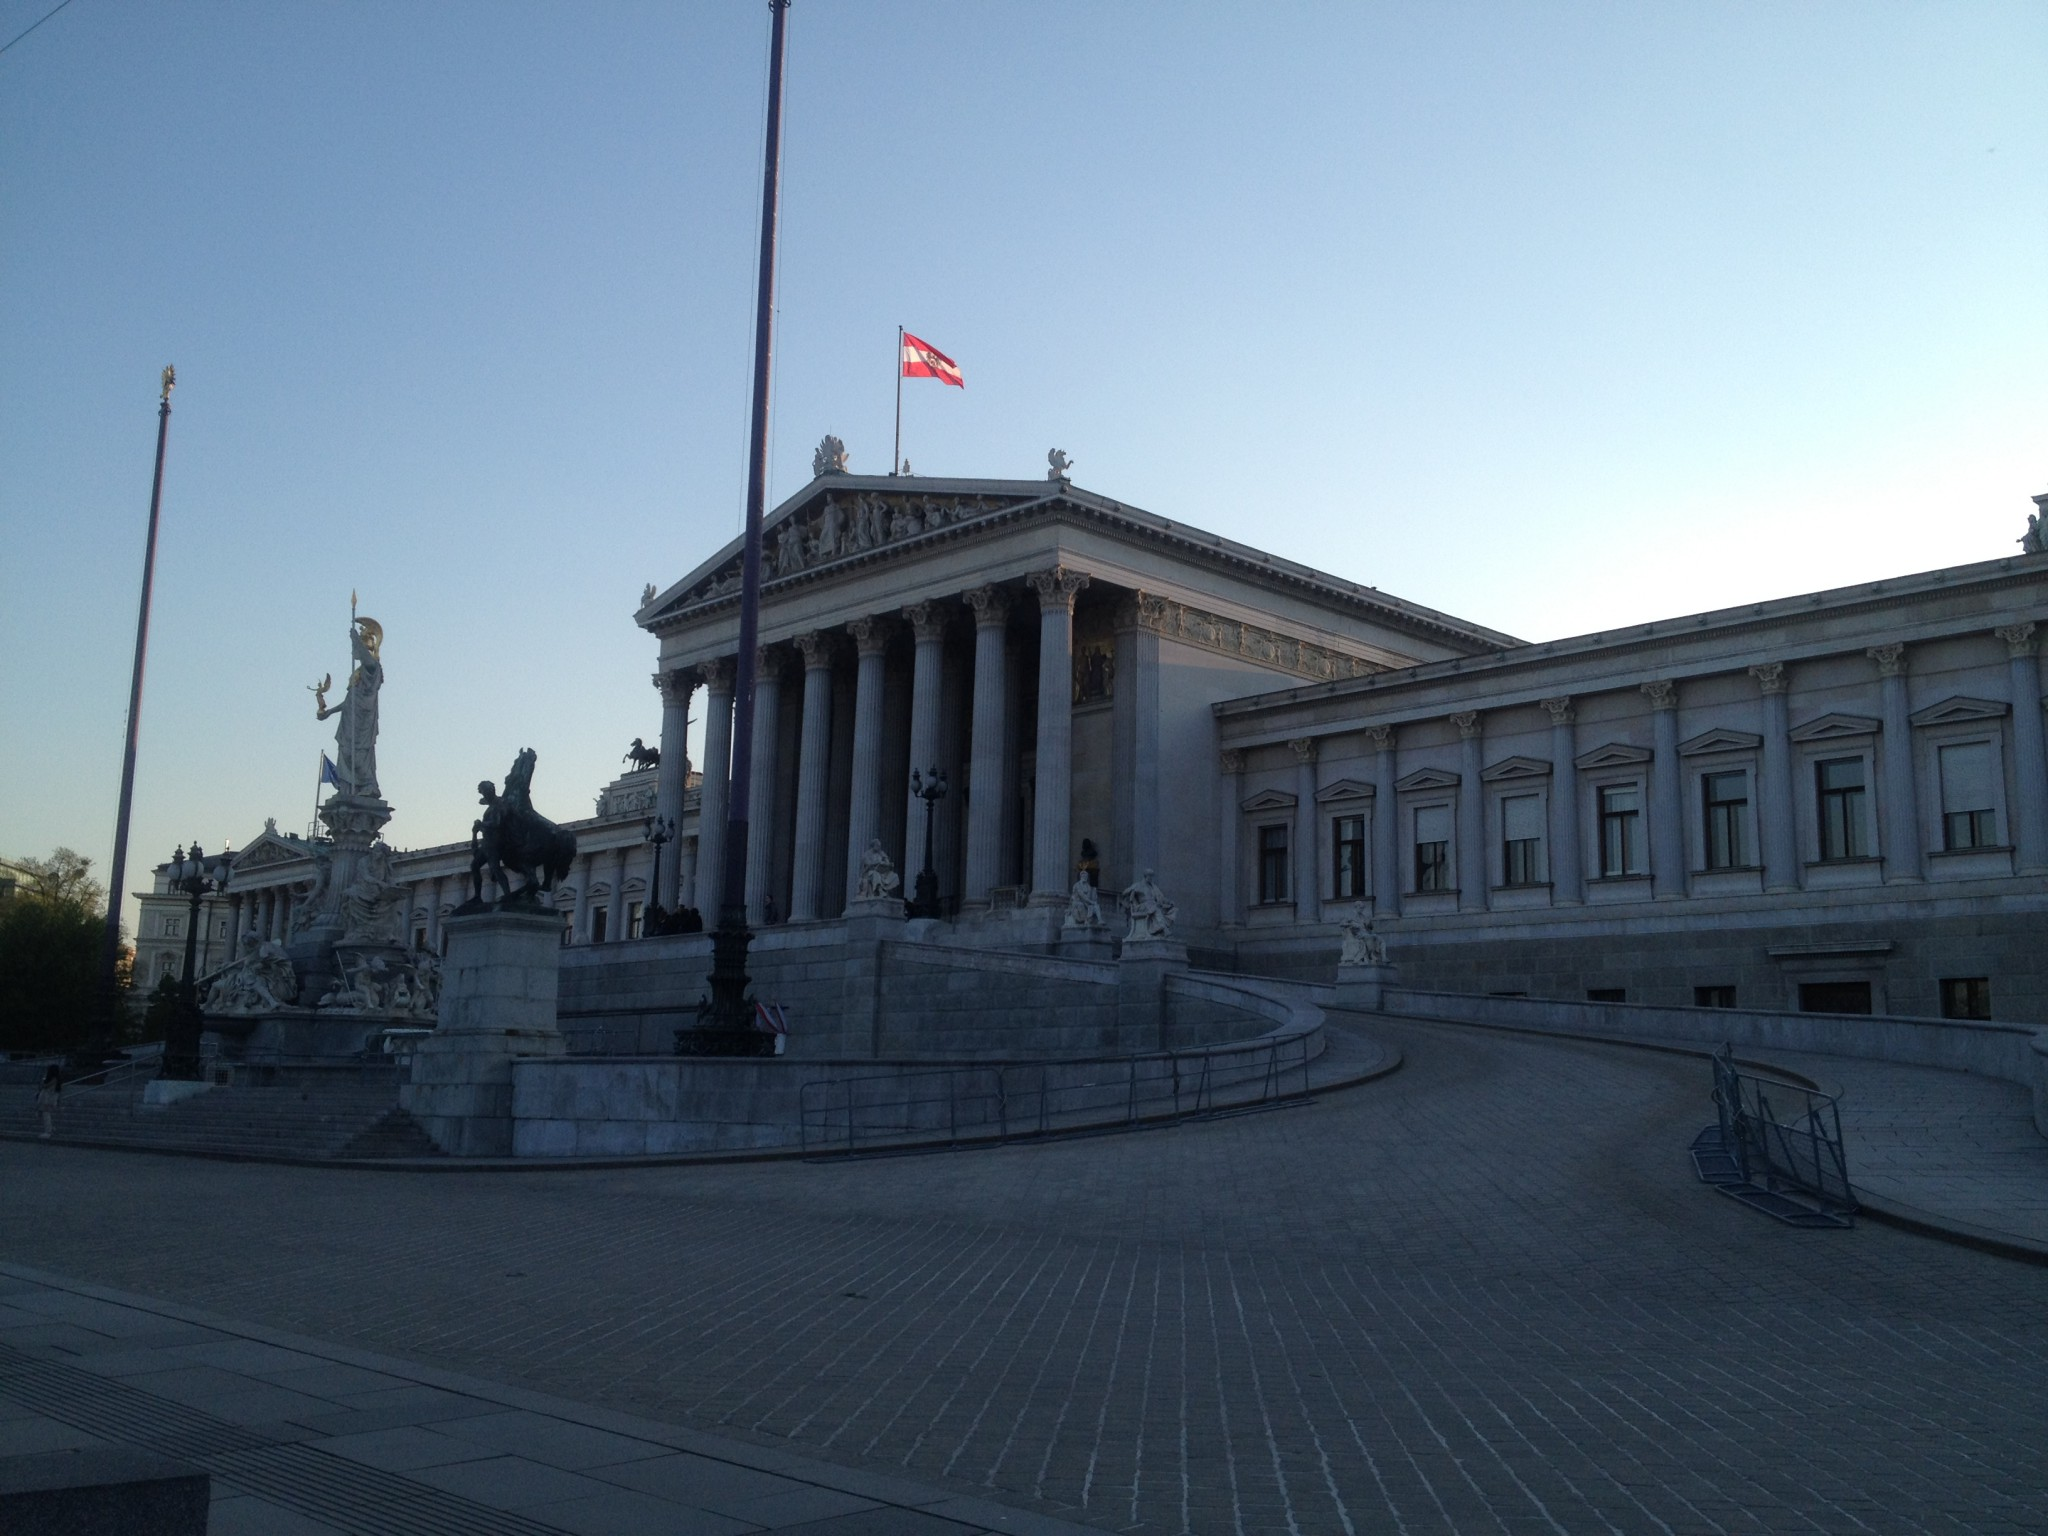 Greek-Roman style adorn this marvel; the Parliament Building.